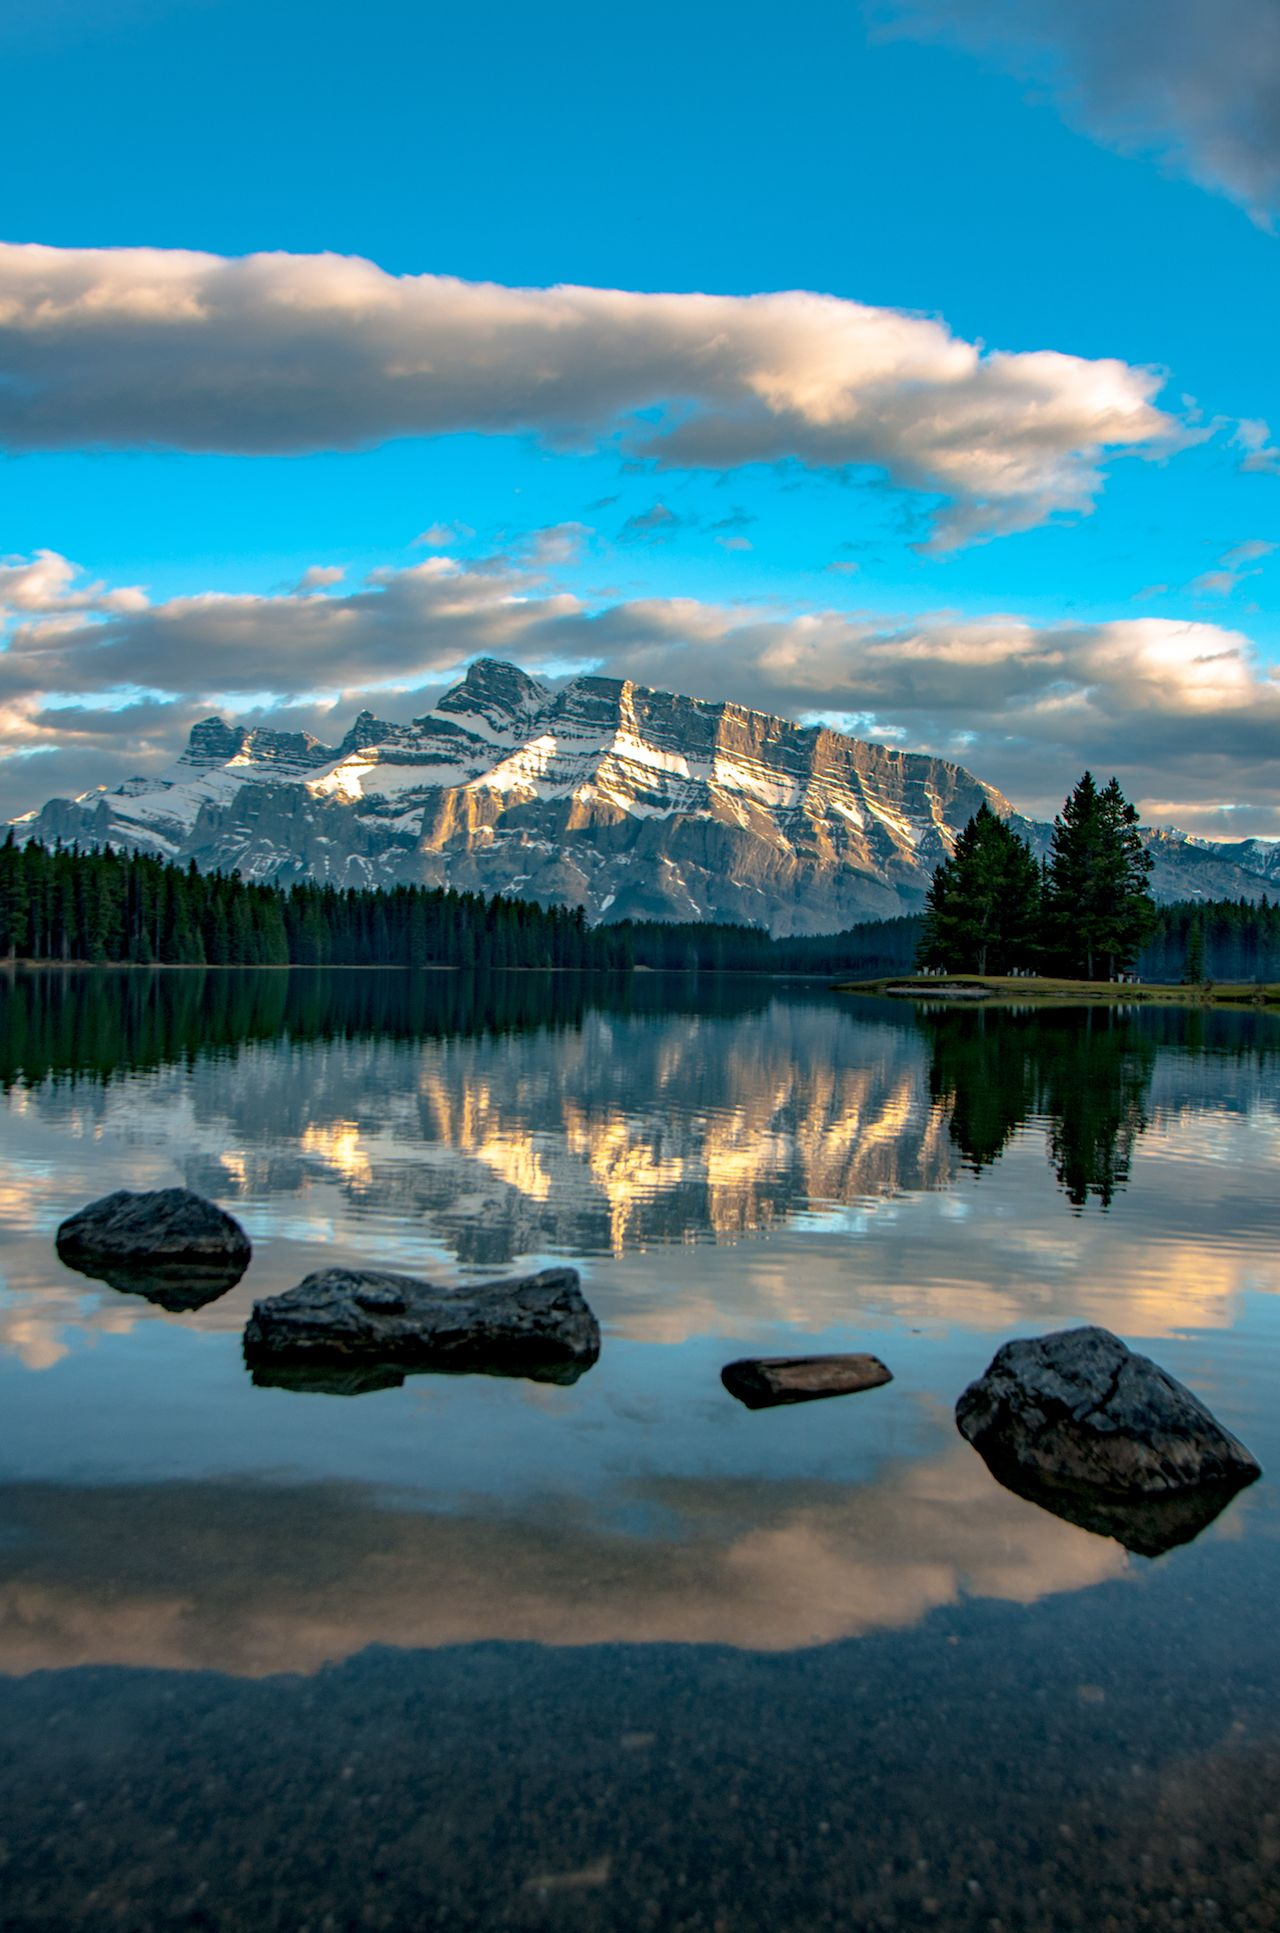 Summer in the Canadian Rockies: the top adventure spots